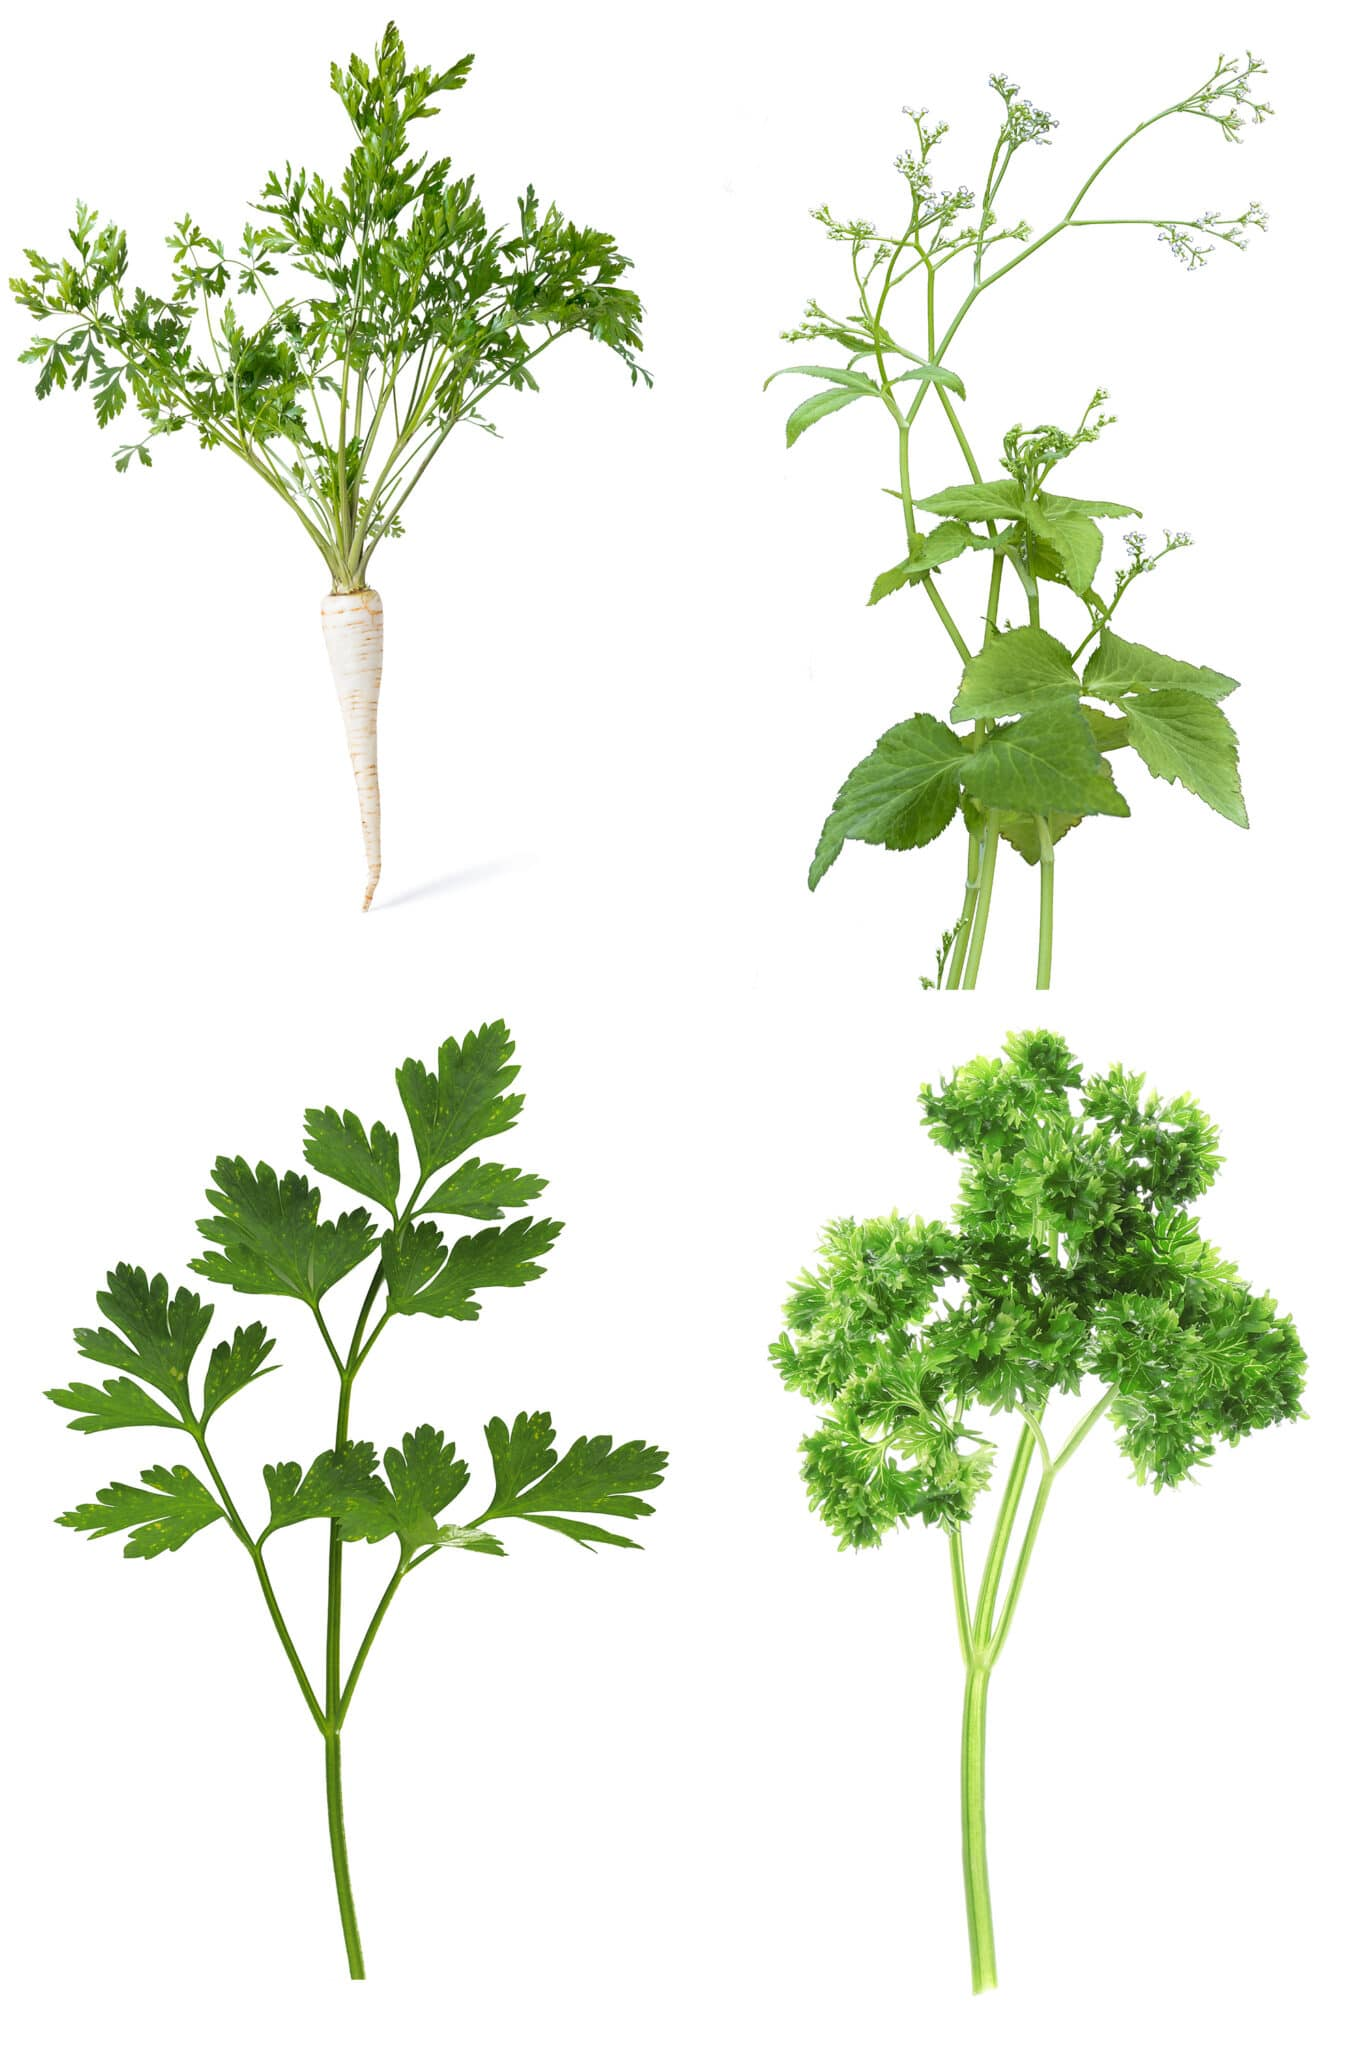 4 images of sprigs of  different types of parsley plants against a bright white background.